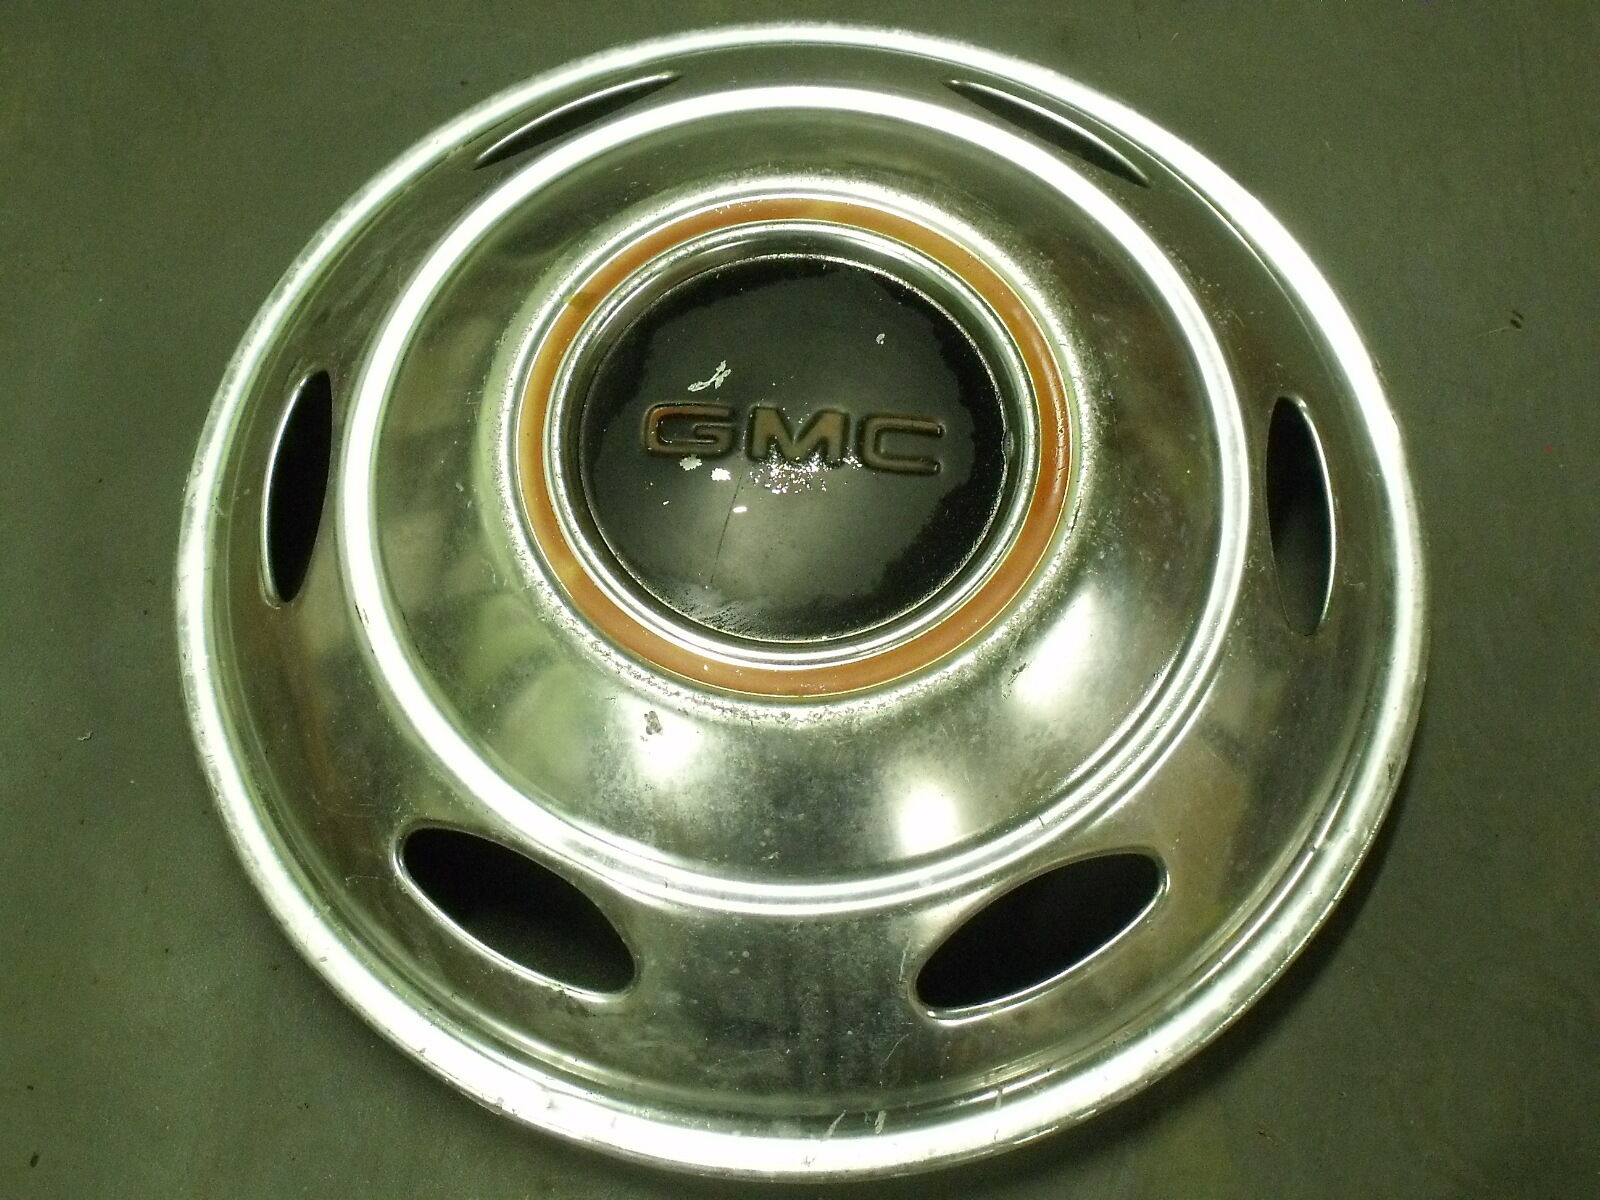 "SINGLE (1) HUB CAP GMC COVER 16"" SEE DESCRIPTION FOR MEASUREMENTS FULL COVER"